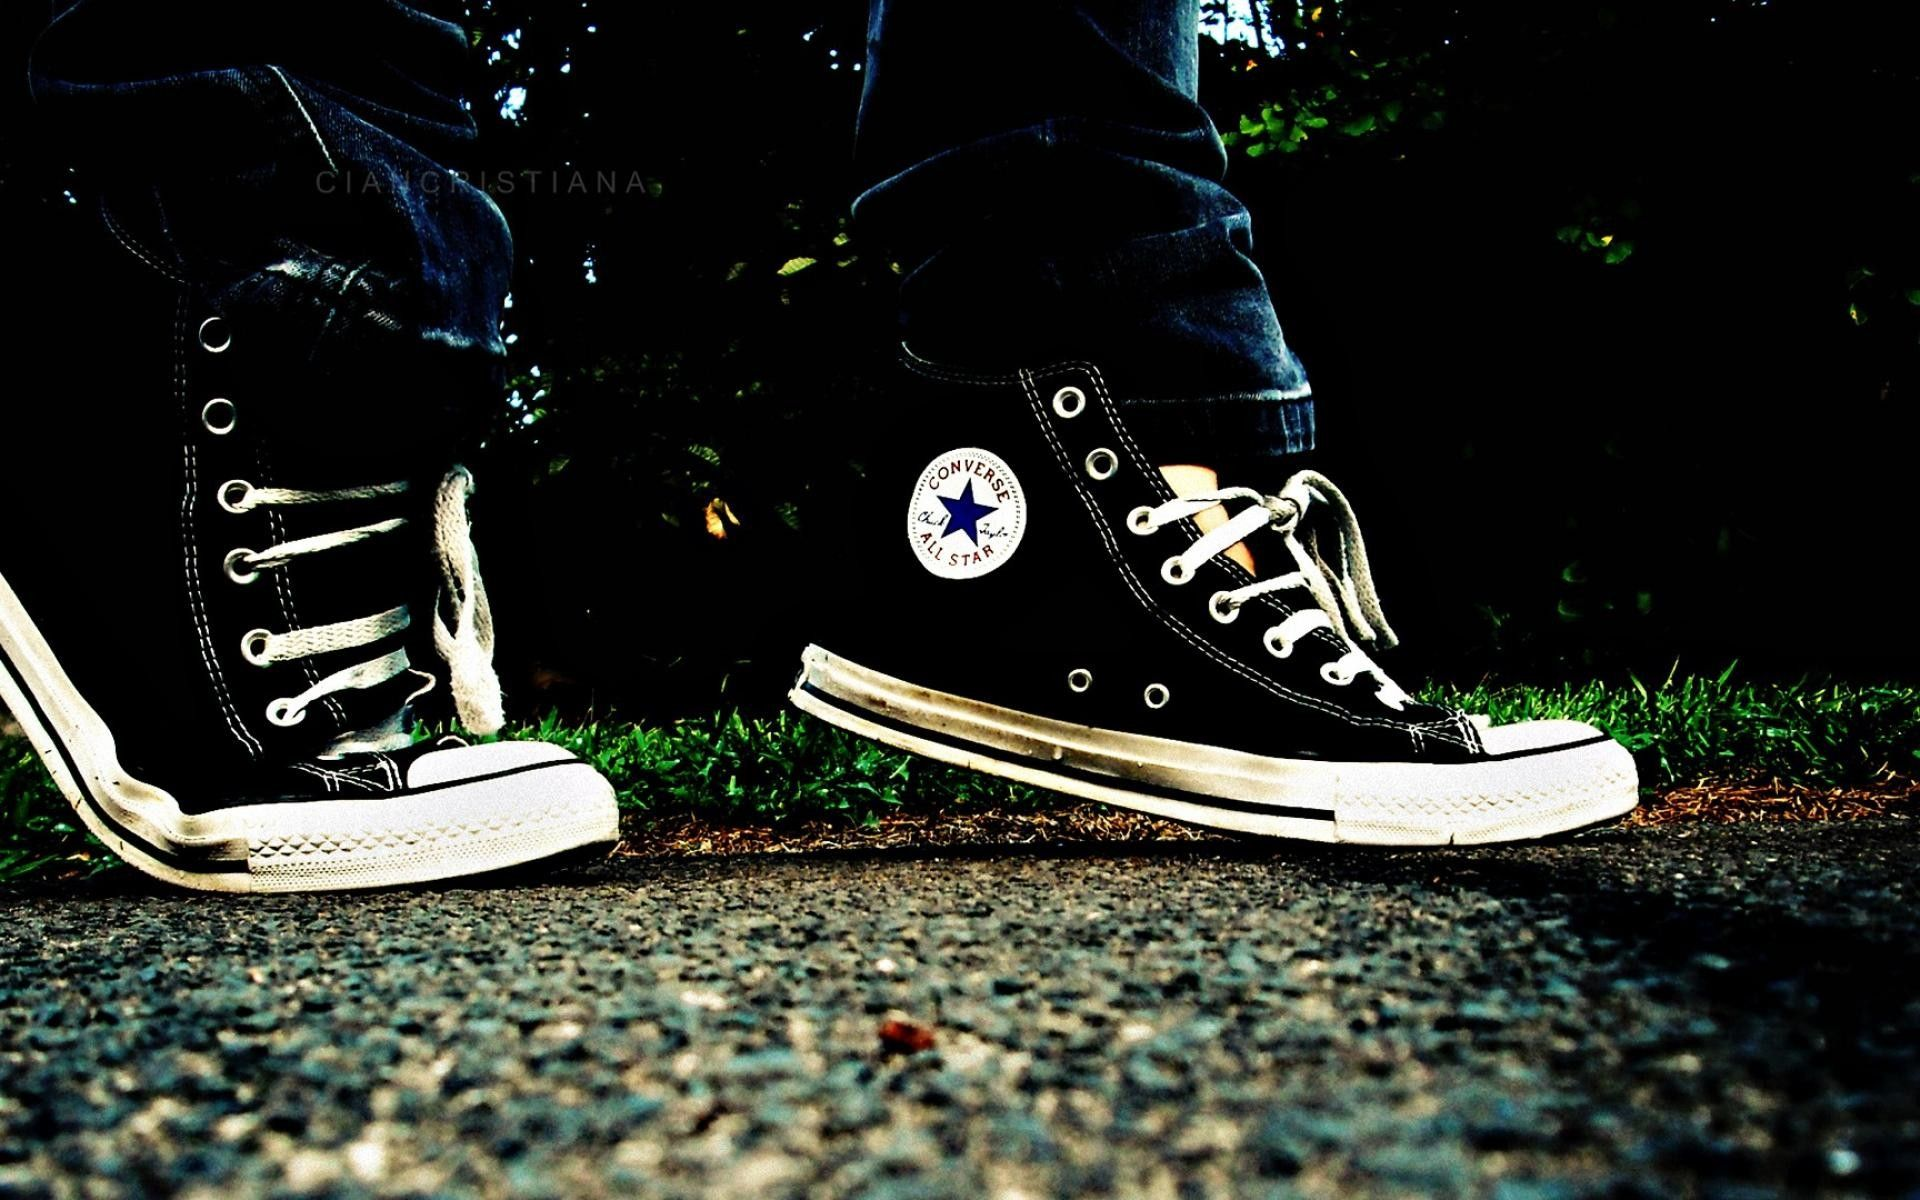 1920x1200 Converse Chuck Taylor Shoes Tablet Phone Wallpaper Background . 897c817e80